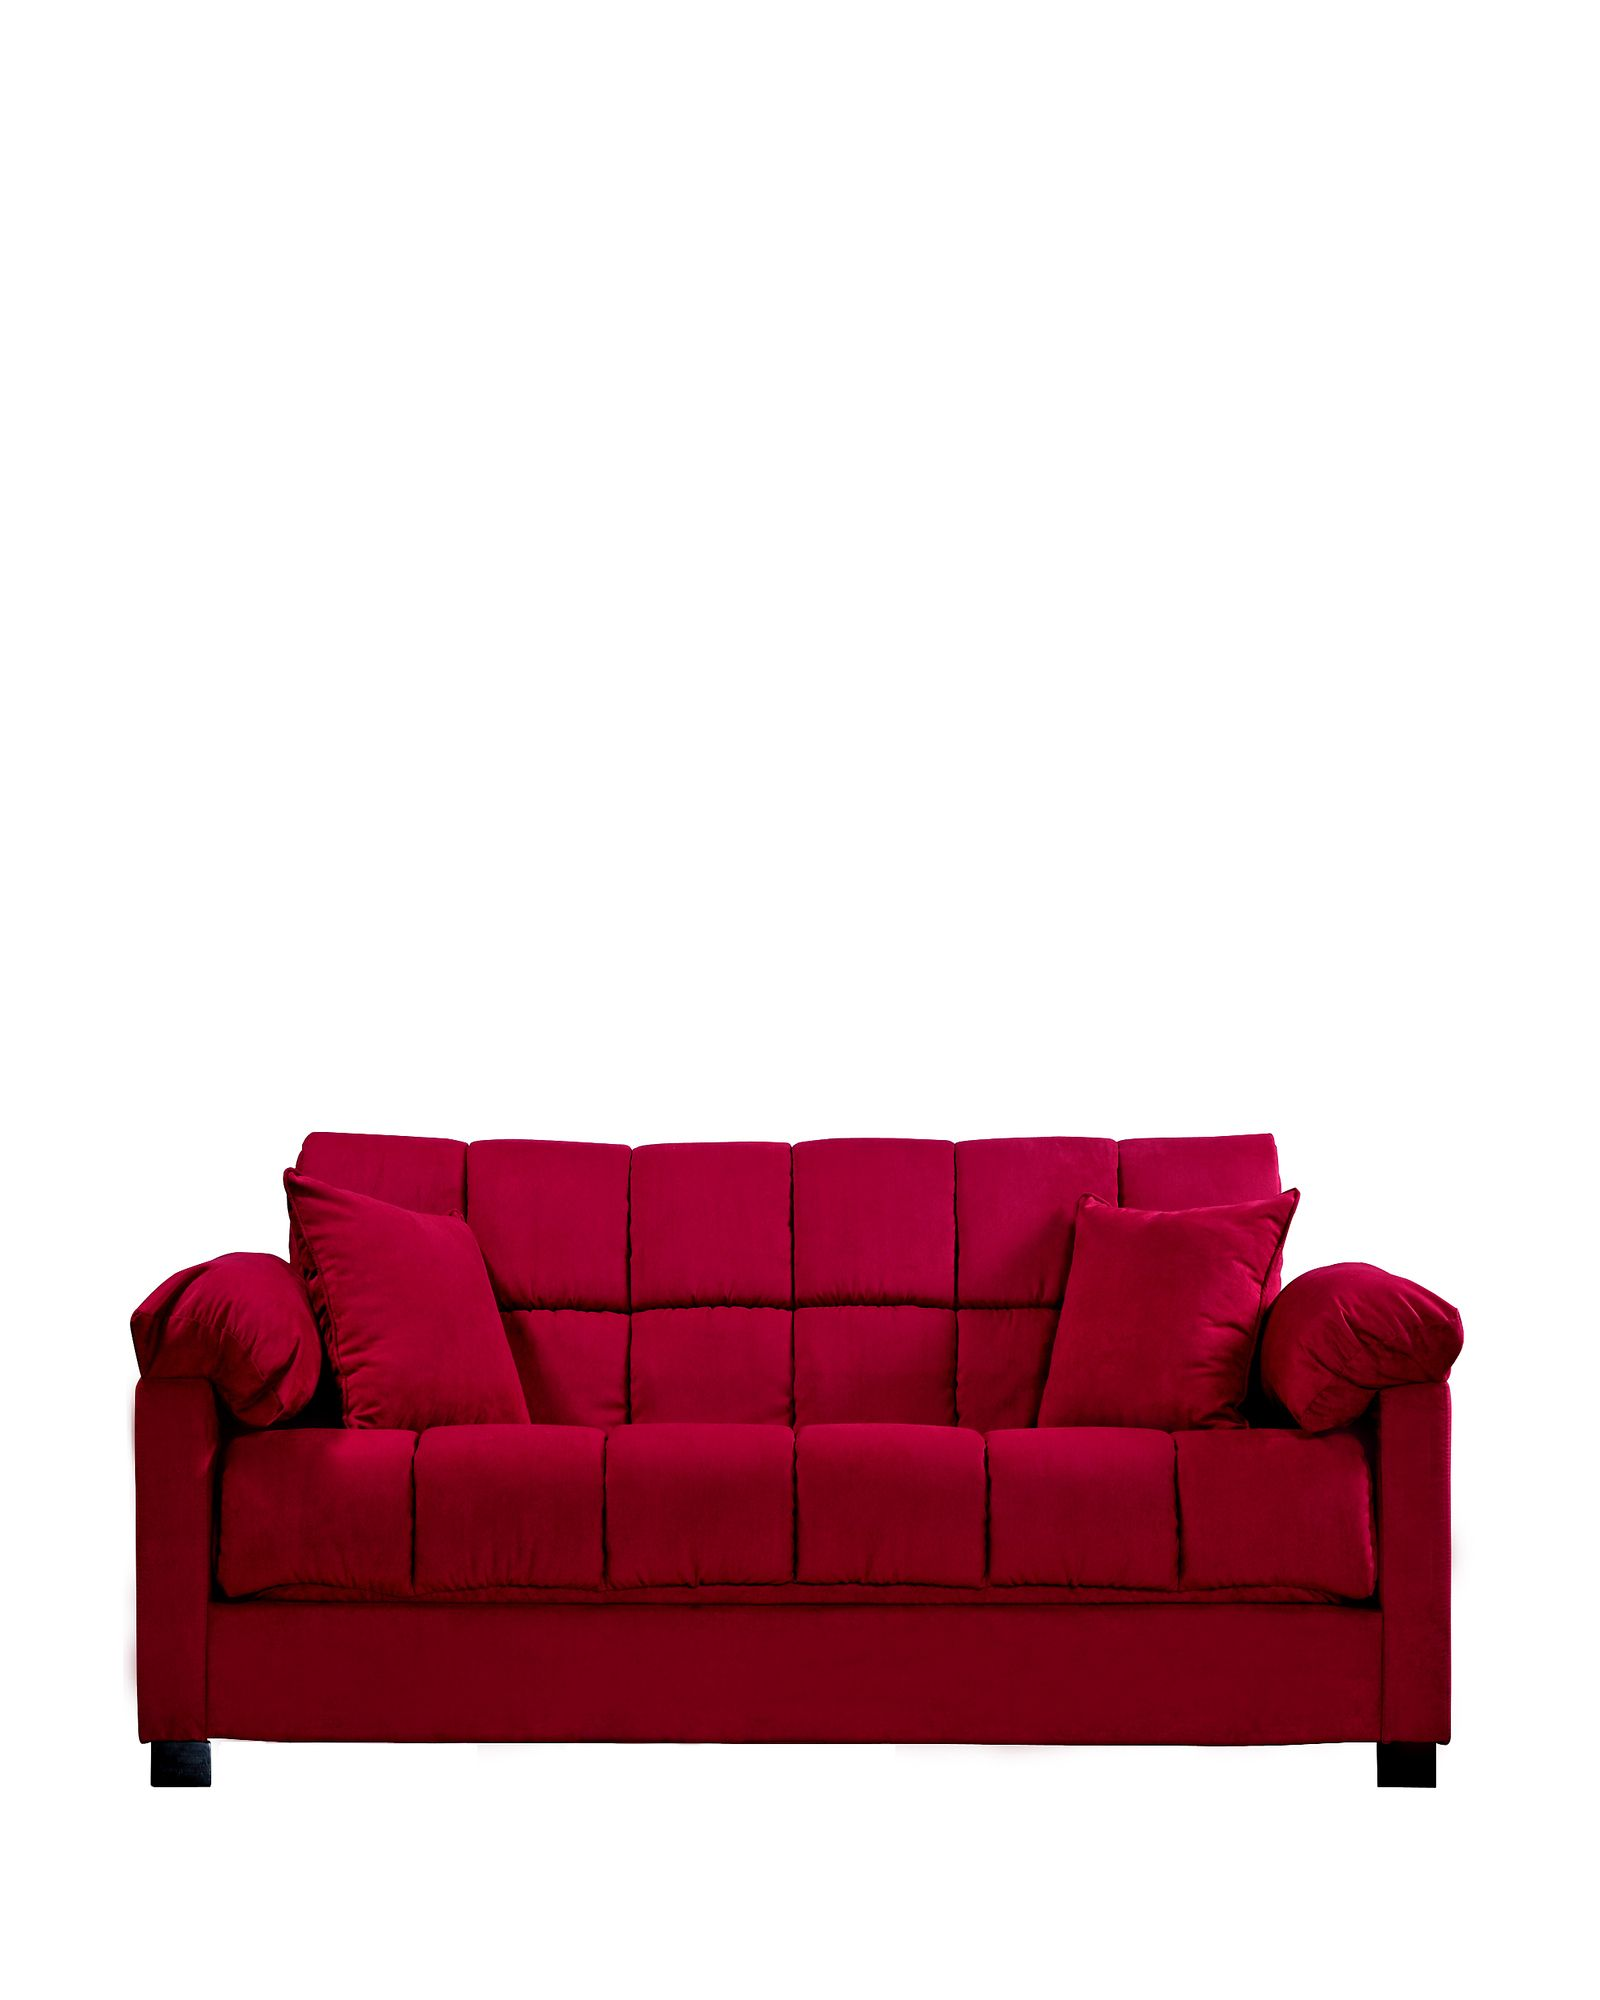 Handy Living Convert A Couch Microfiber Sleeper Sofa In Crimson Red Beautiful Functional Looks Pretty Comfy Sofa Sleeper Sofa Couch Bed Pillows Decorative